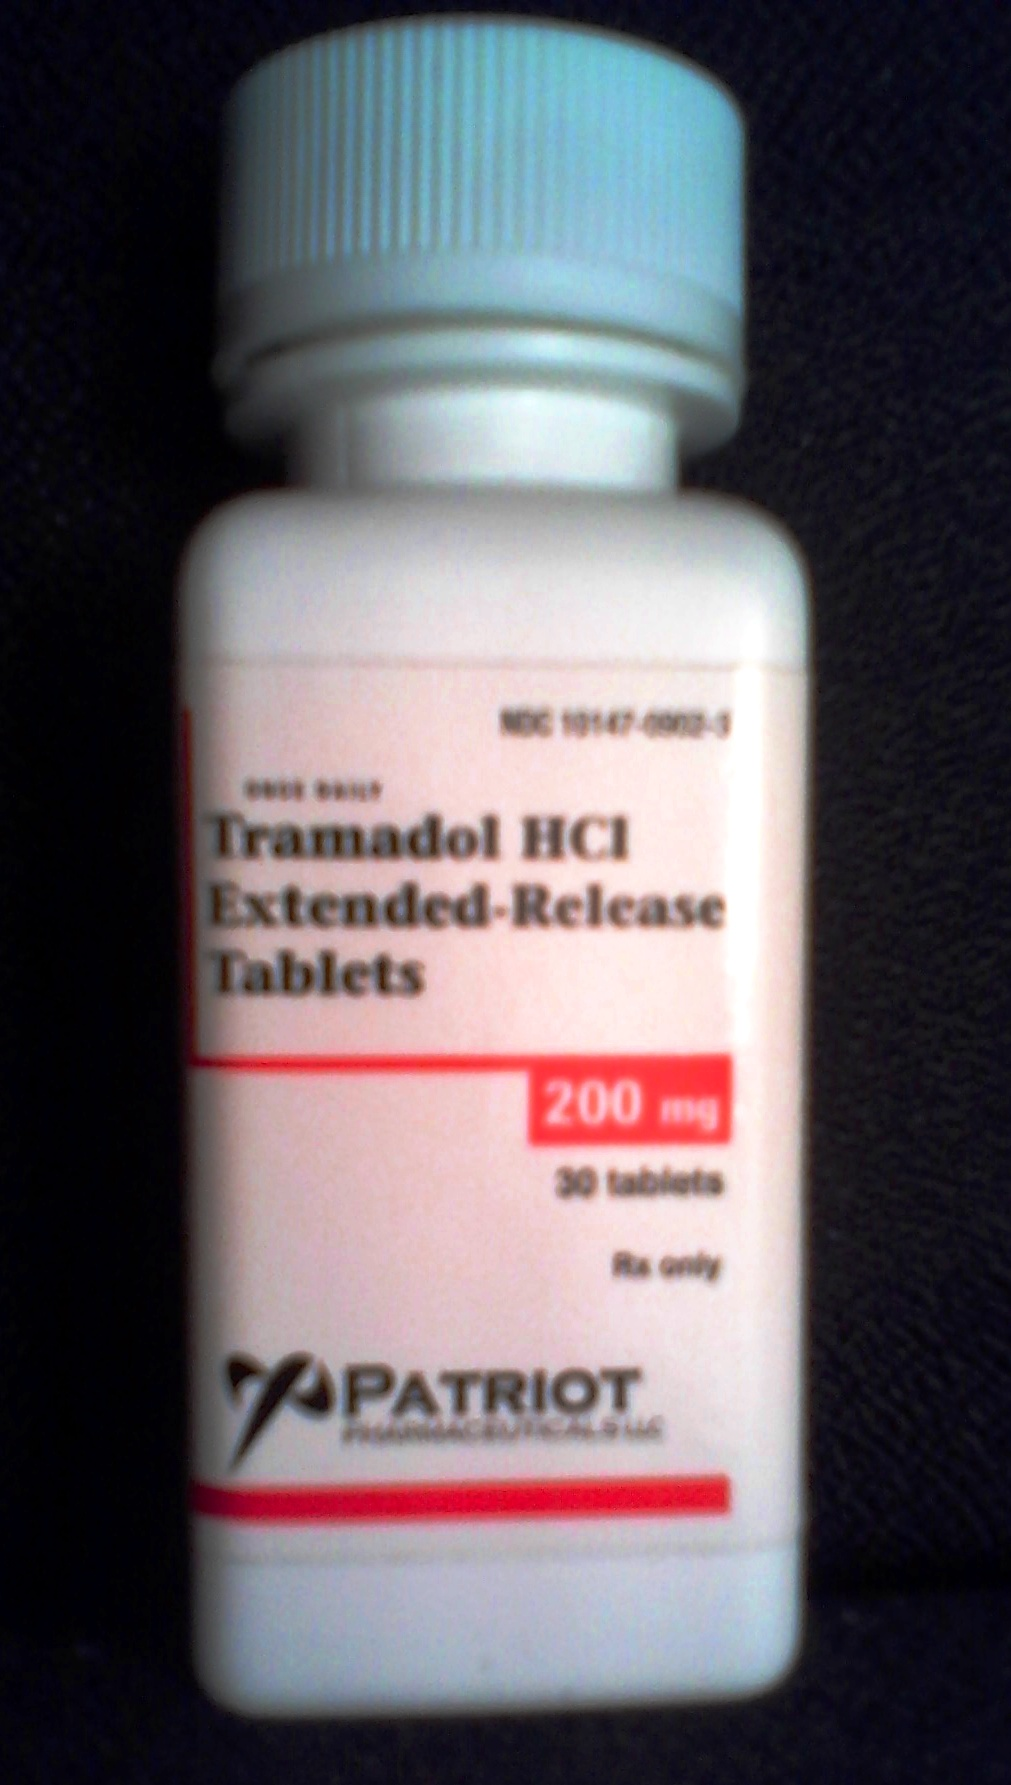 tramadol hcl 50 mg tablet pictures of all of them and name